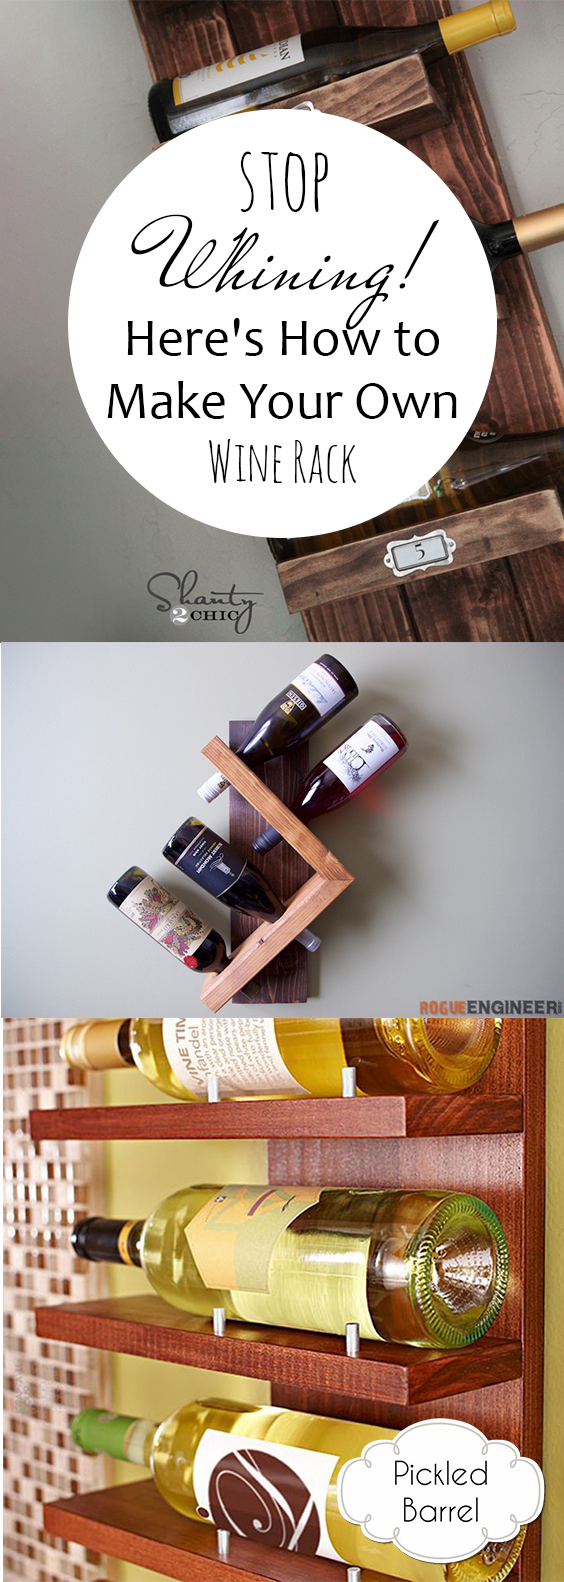 Stop Whining! Here's How to Make Your Own Wine Rack| DIY Wine Rack Wine Rack Projects, DIY Home, DIY Home Decor, Home Decor, How to Make Your Own Wine Racks, Wine Rack Projects, Home Decor Projects, Popular Pin